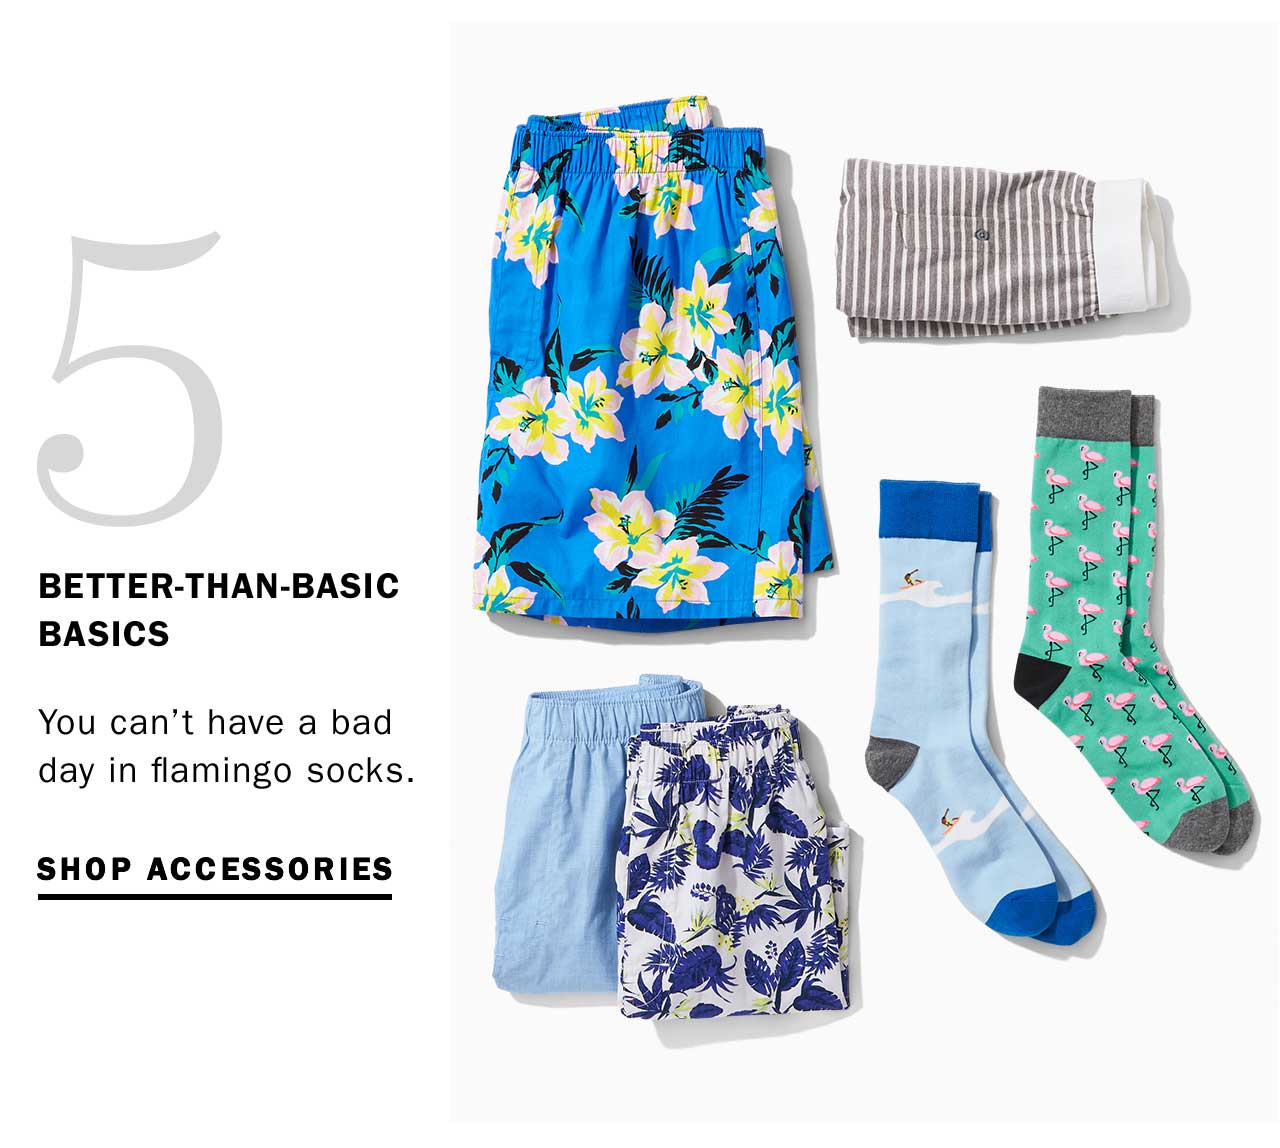 5 BETTER-THAN-BASIC BASICS | SHOP ACCESSORIES